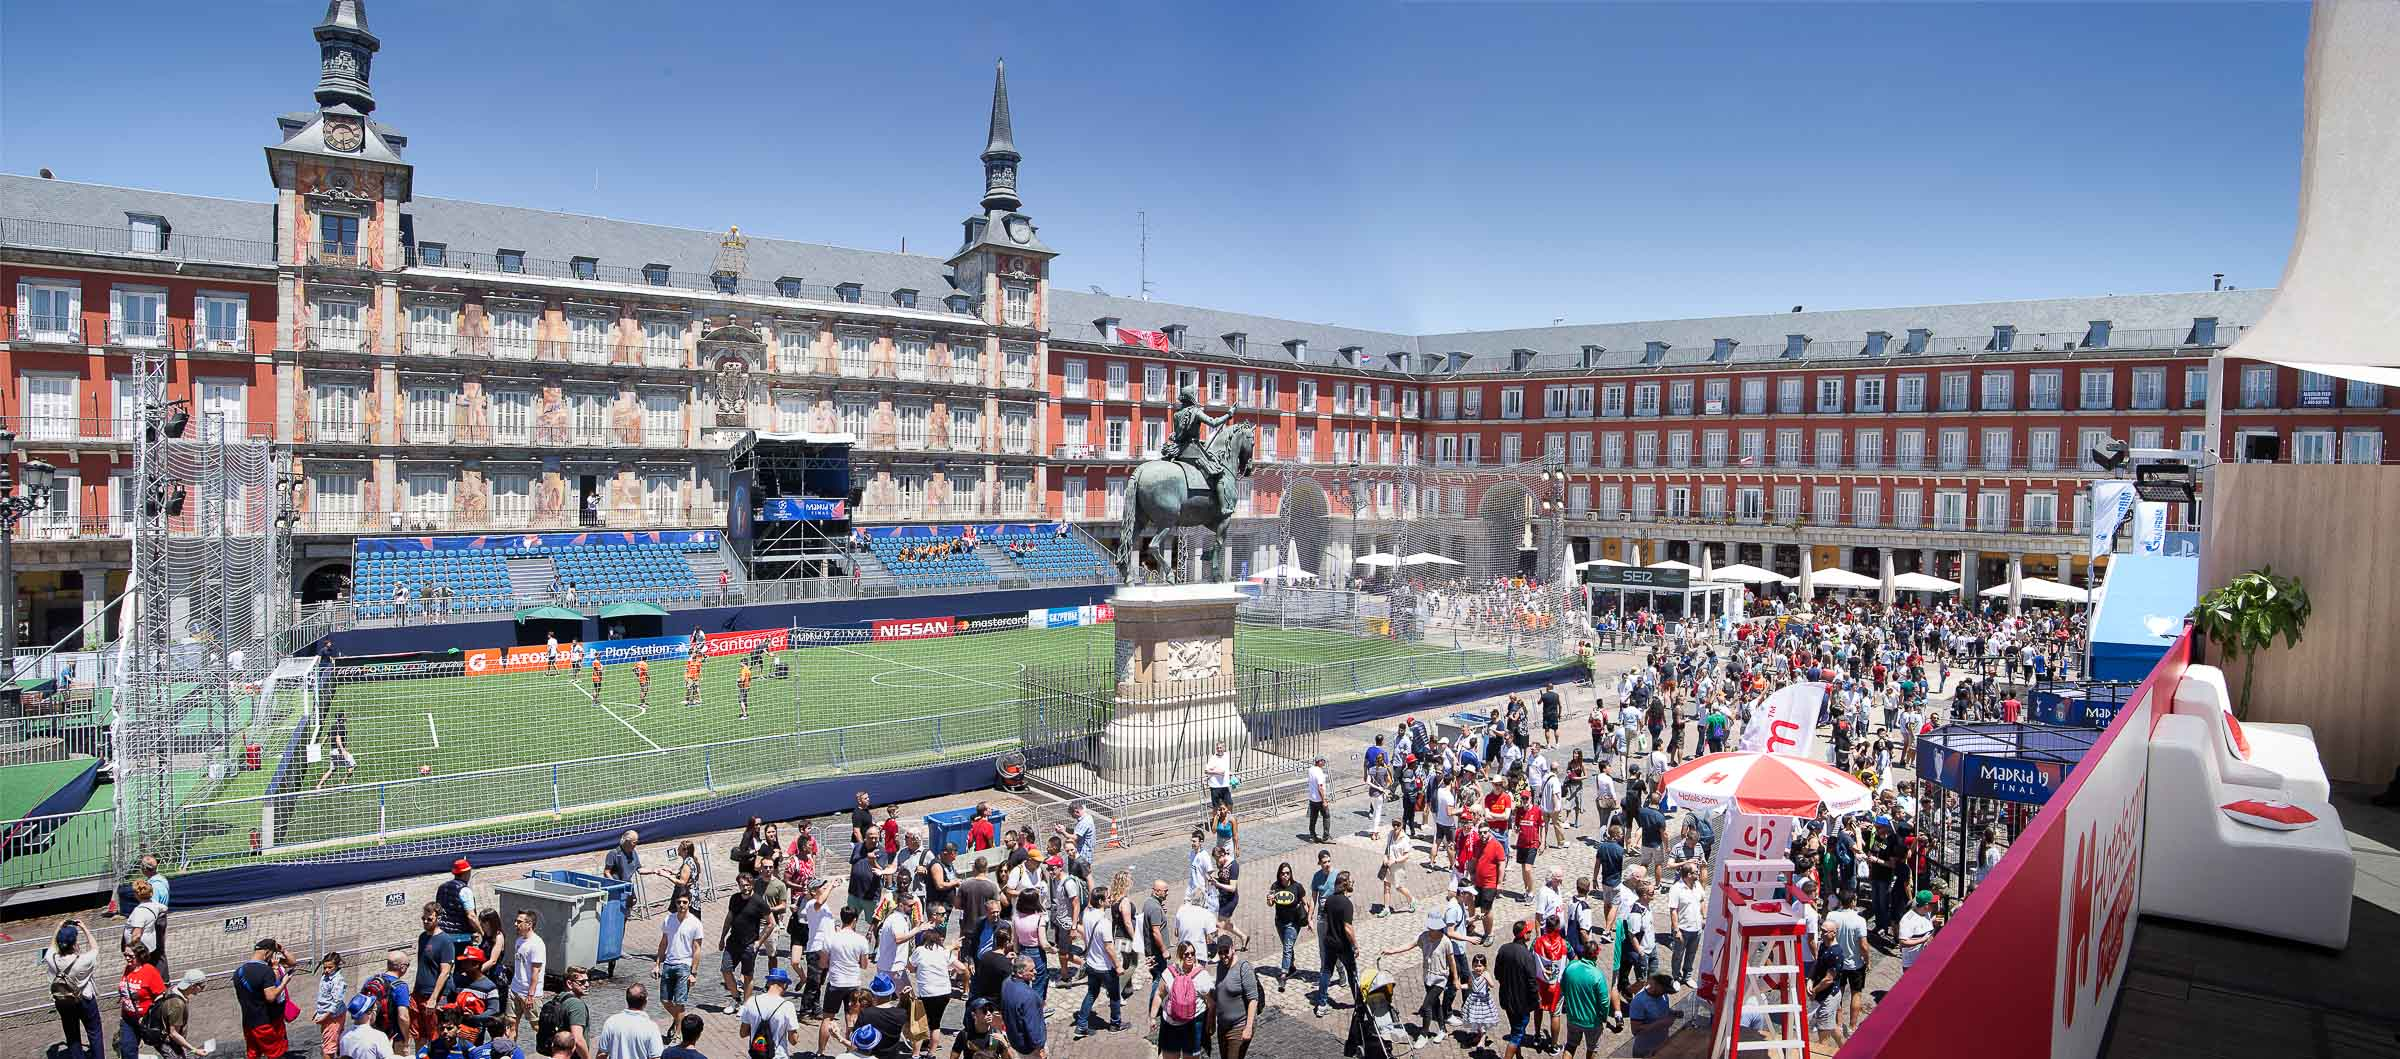 panoramic photographer madrid plaza mayor uefa